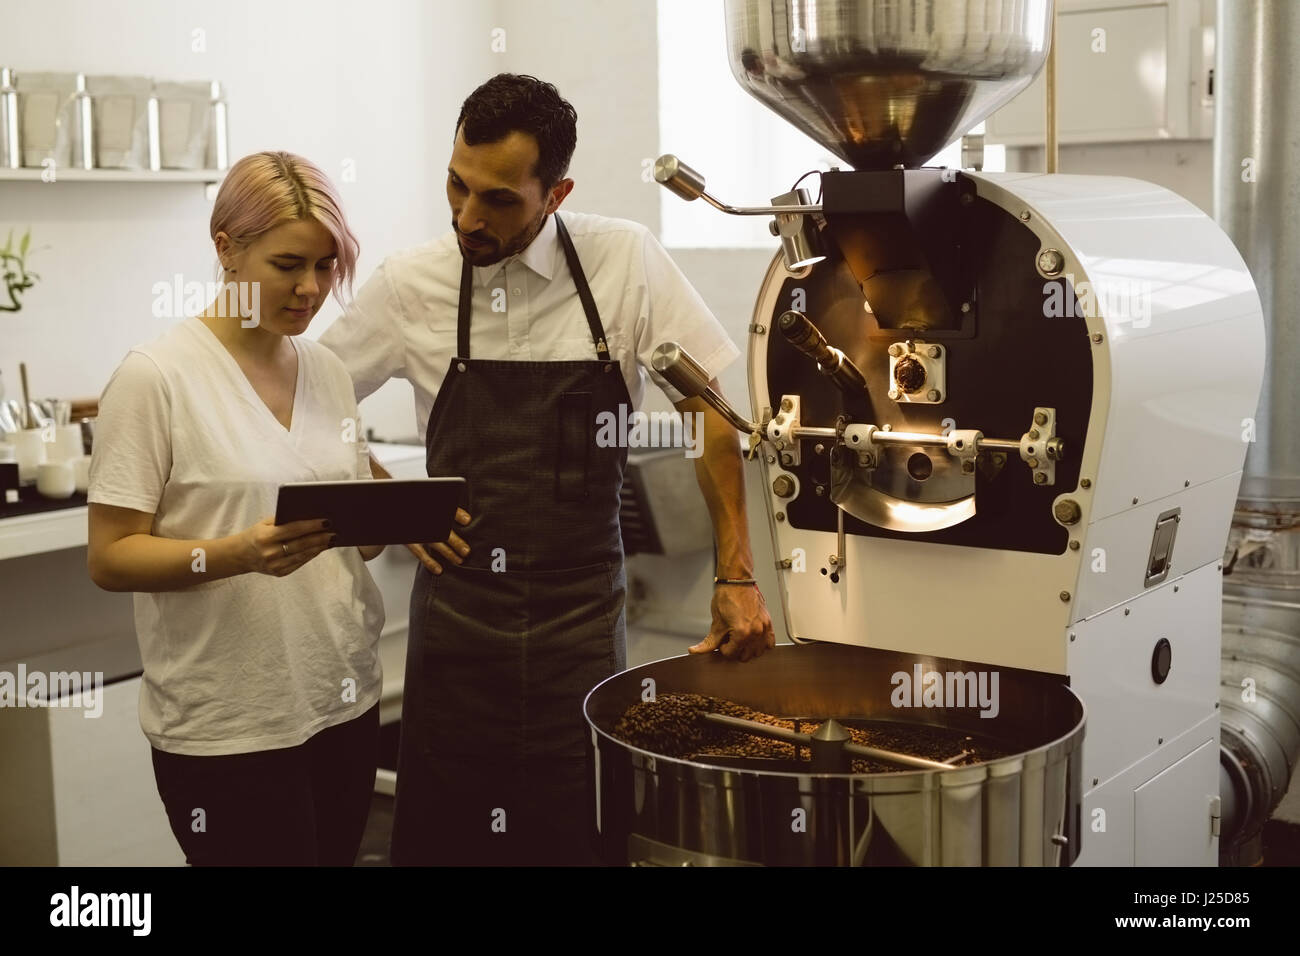 Standing Besides Stock Photos amp Images Alamy